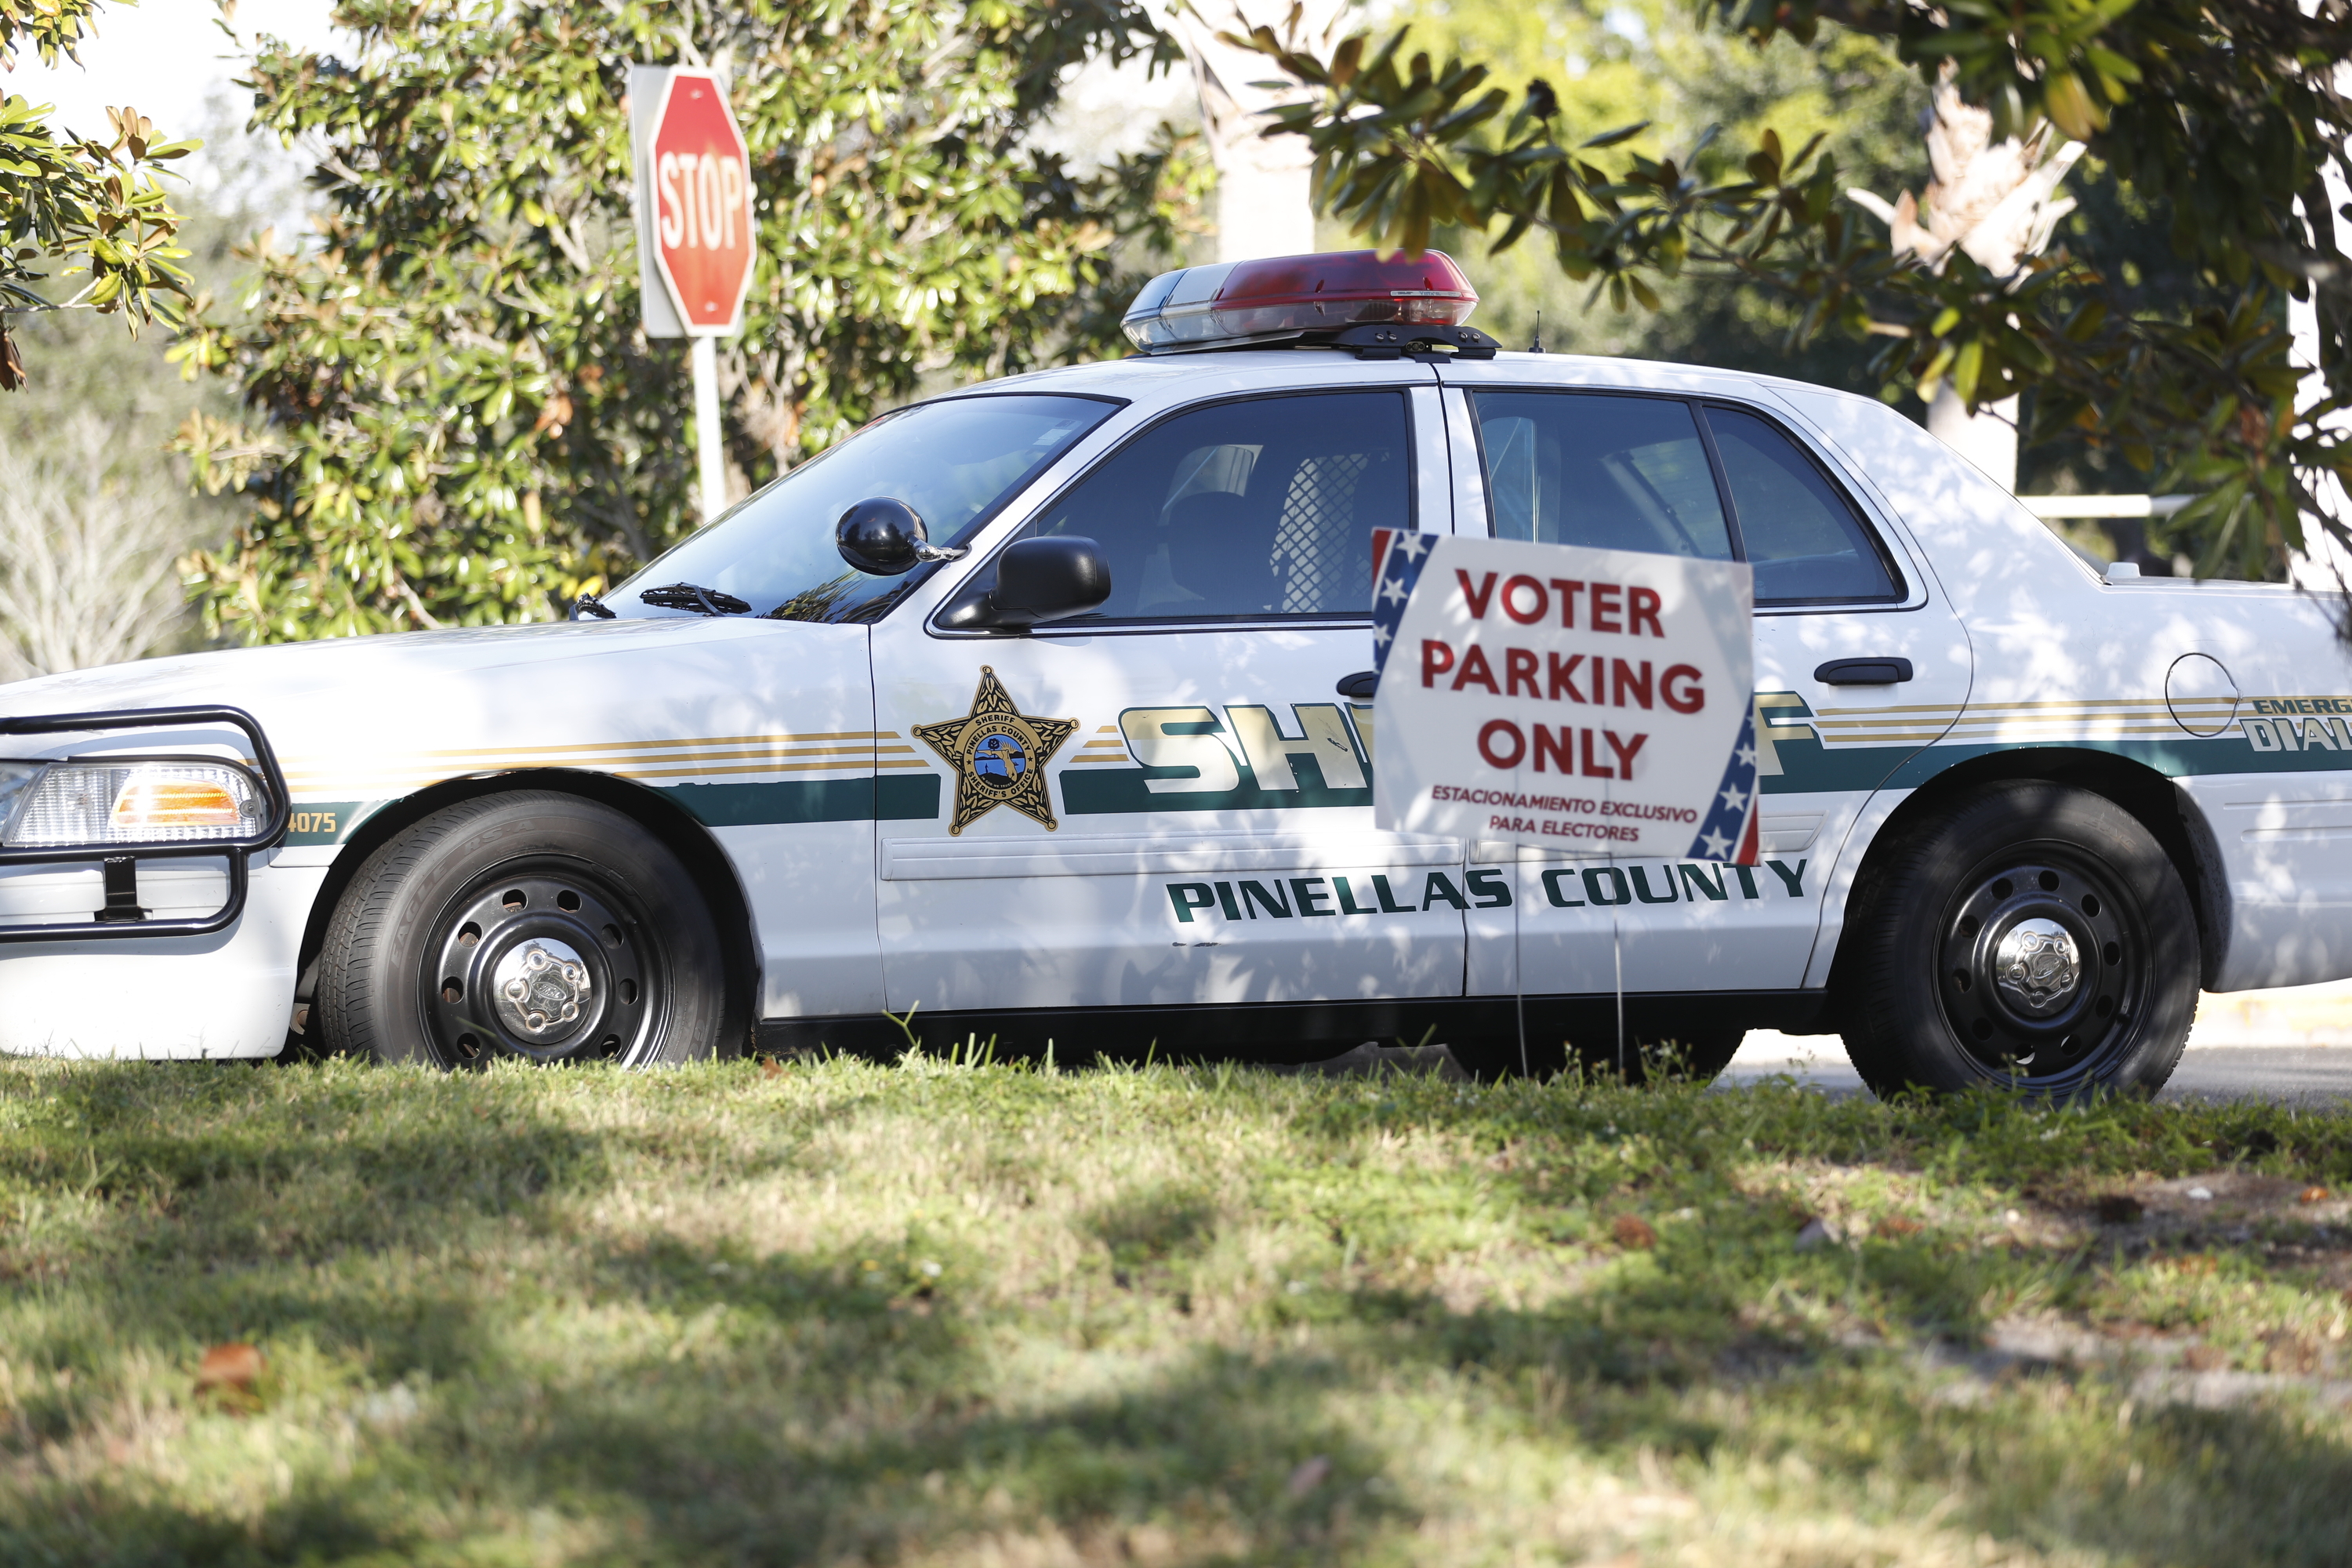 Fla. Sheriff Tells New Locals Don't 'Vote the Stupid Way You Did Up North'